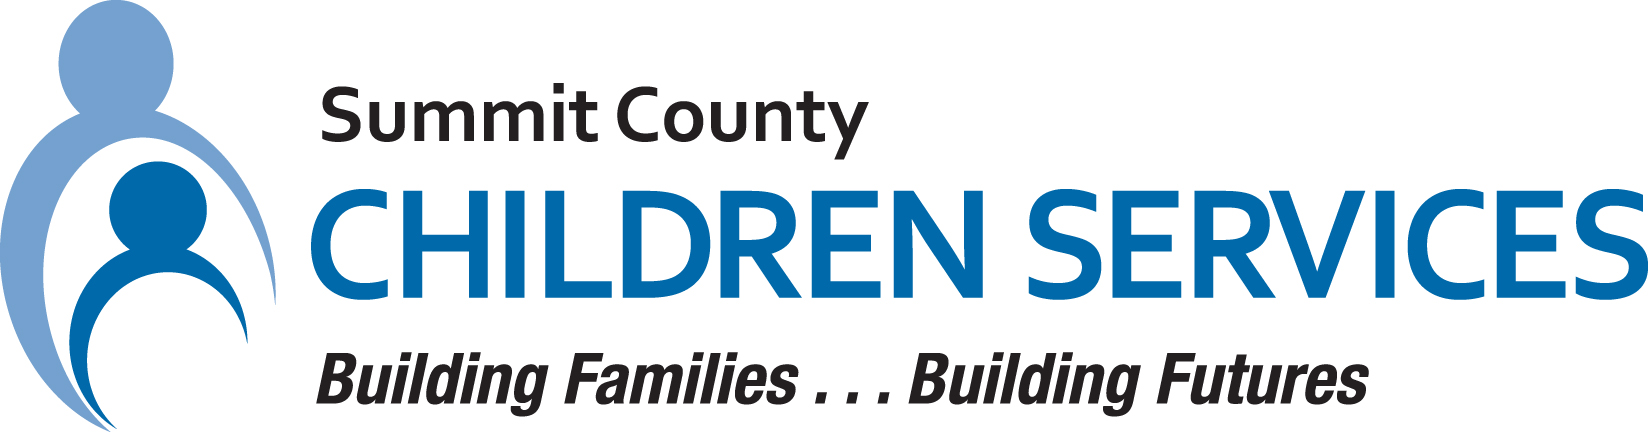 Summit County Children Services